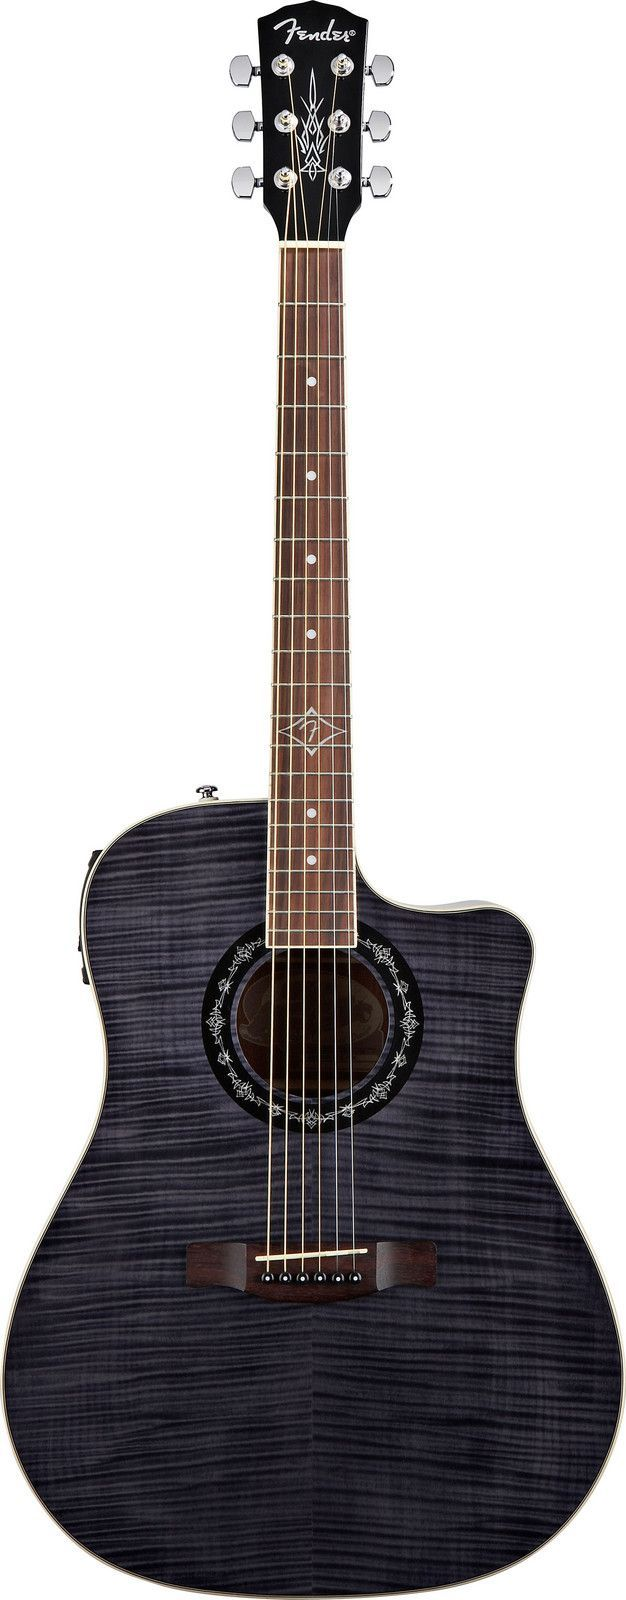 drooling over this gorgeous acoustic-electric guitar: Fender T-Bucket 300 CE (Black)   $300 at